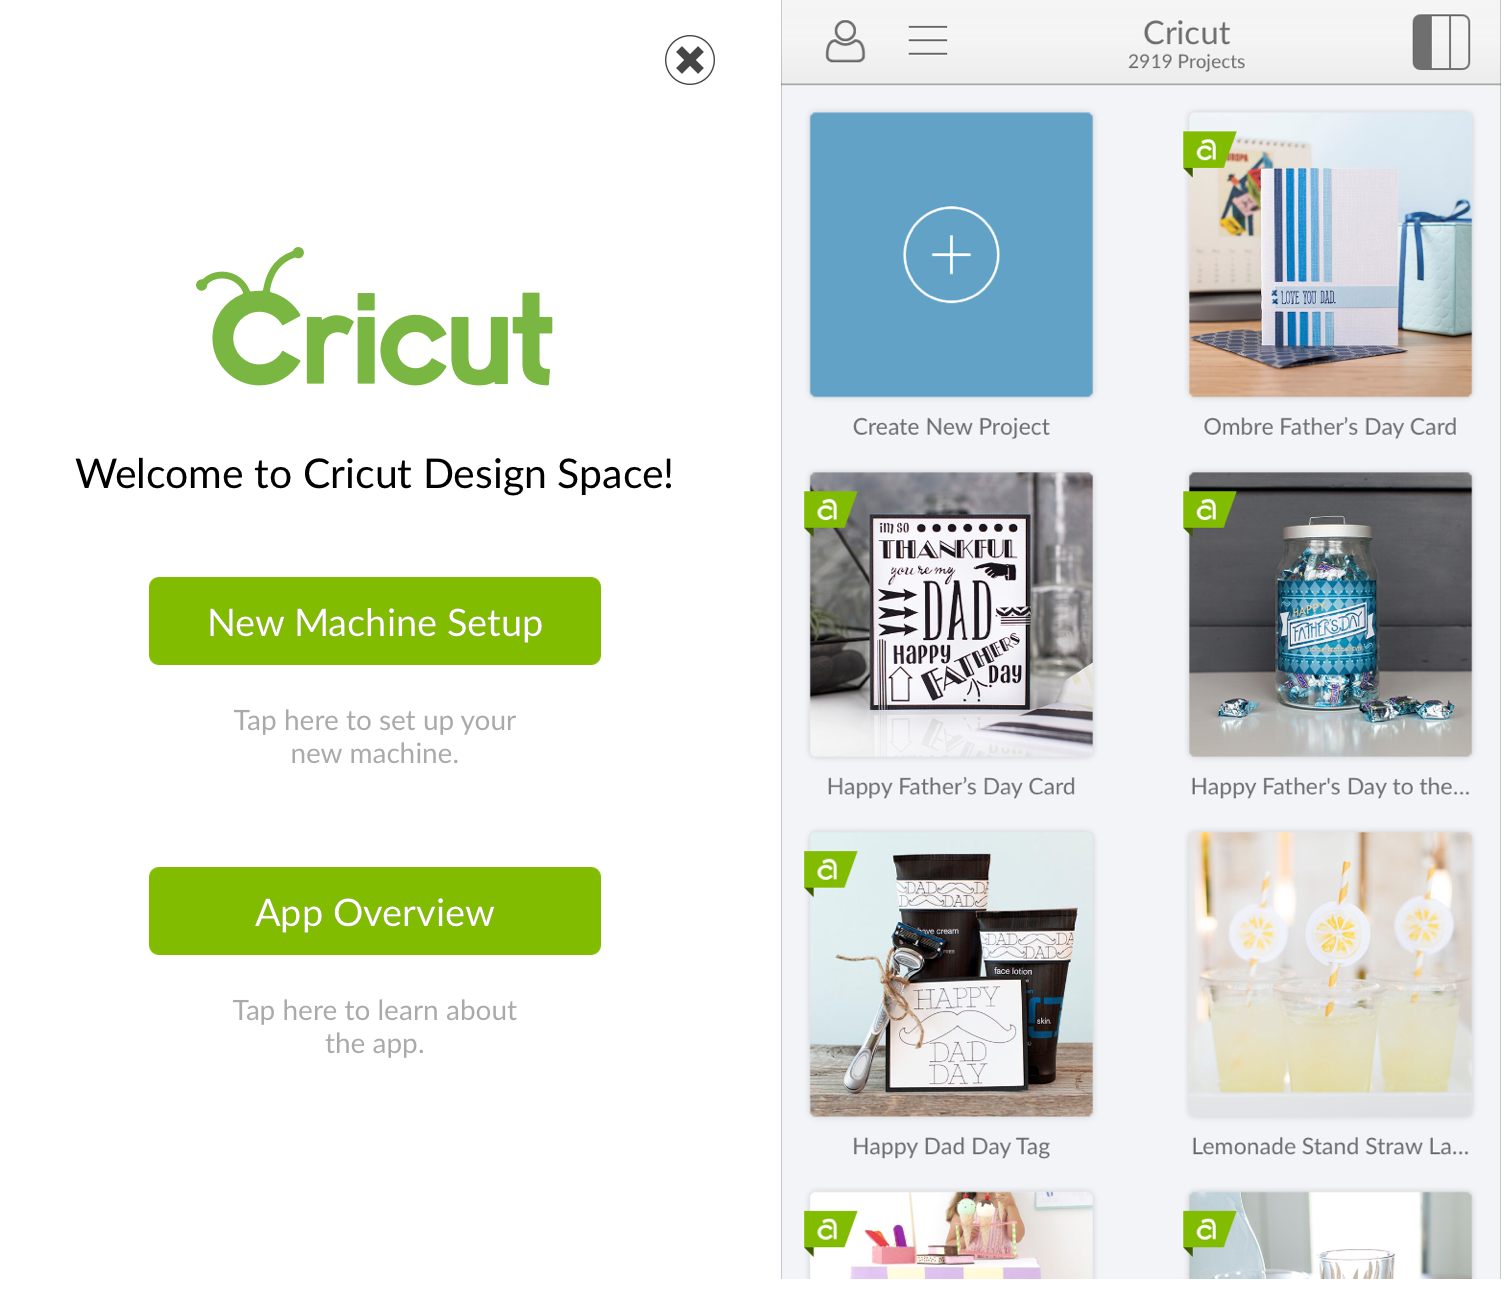 How to install or uninstall Cricut Design Space Help